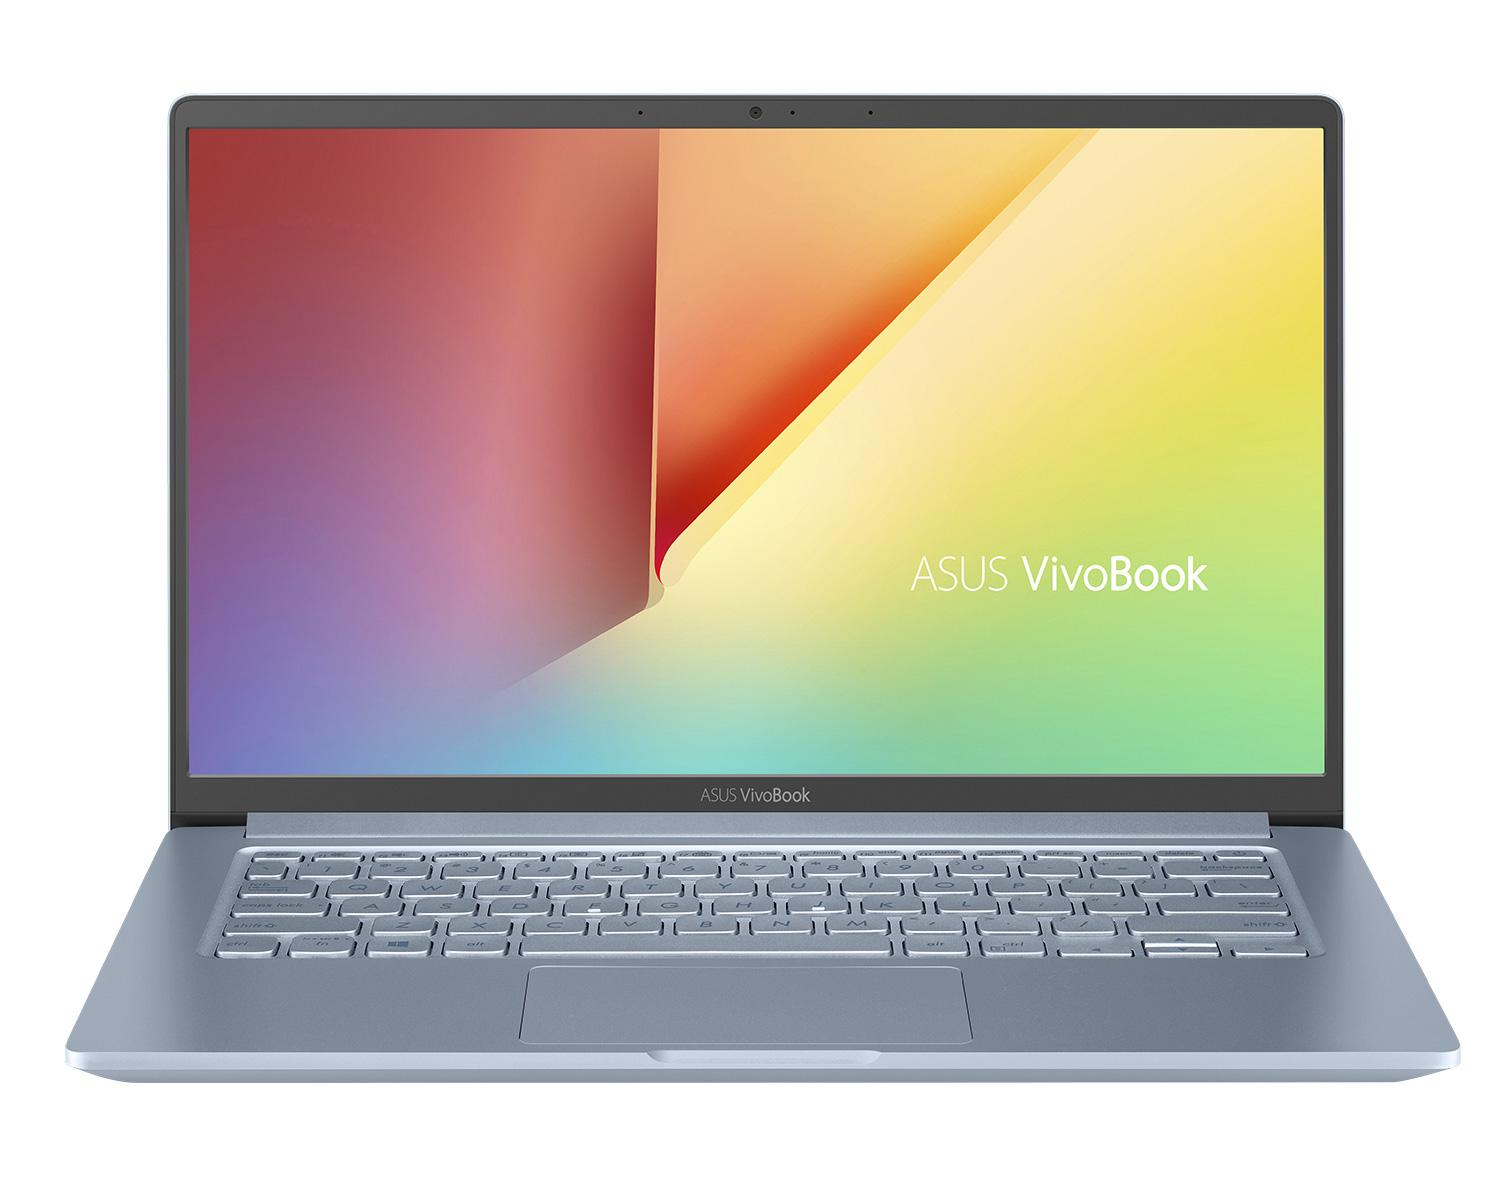 Ordinateur portable Asus VivoBook S403FA-EB116T Bleu Gris - photo 2